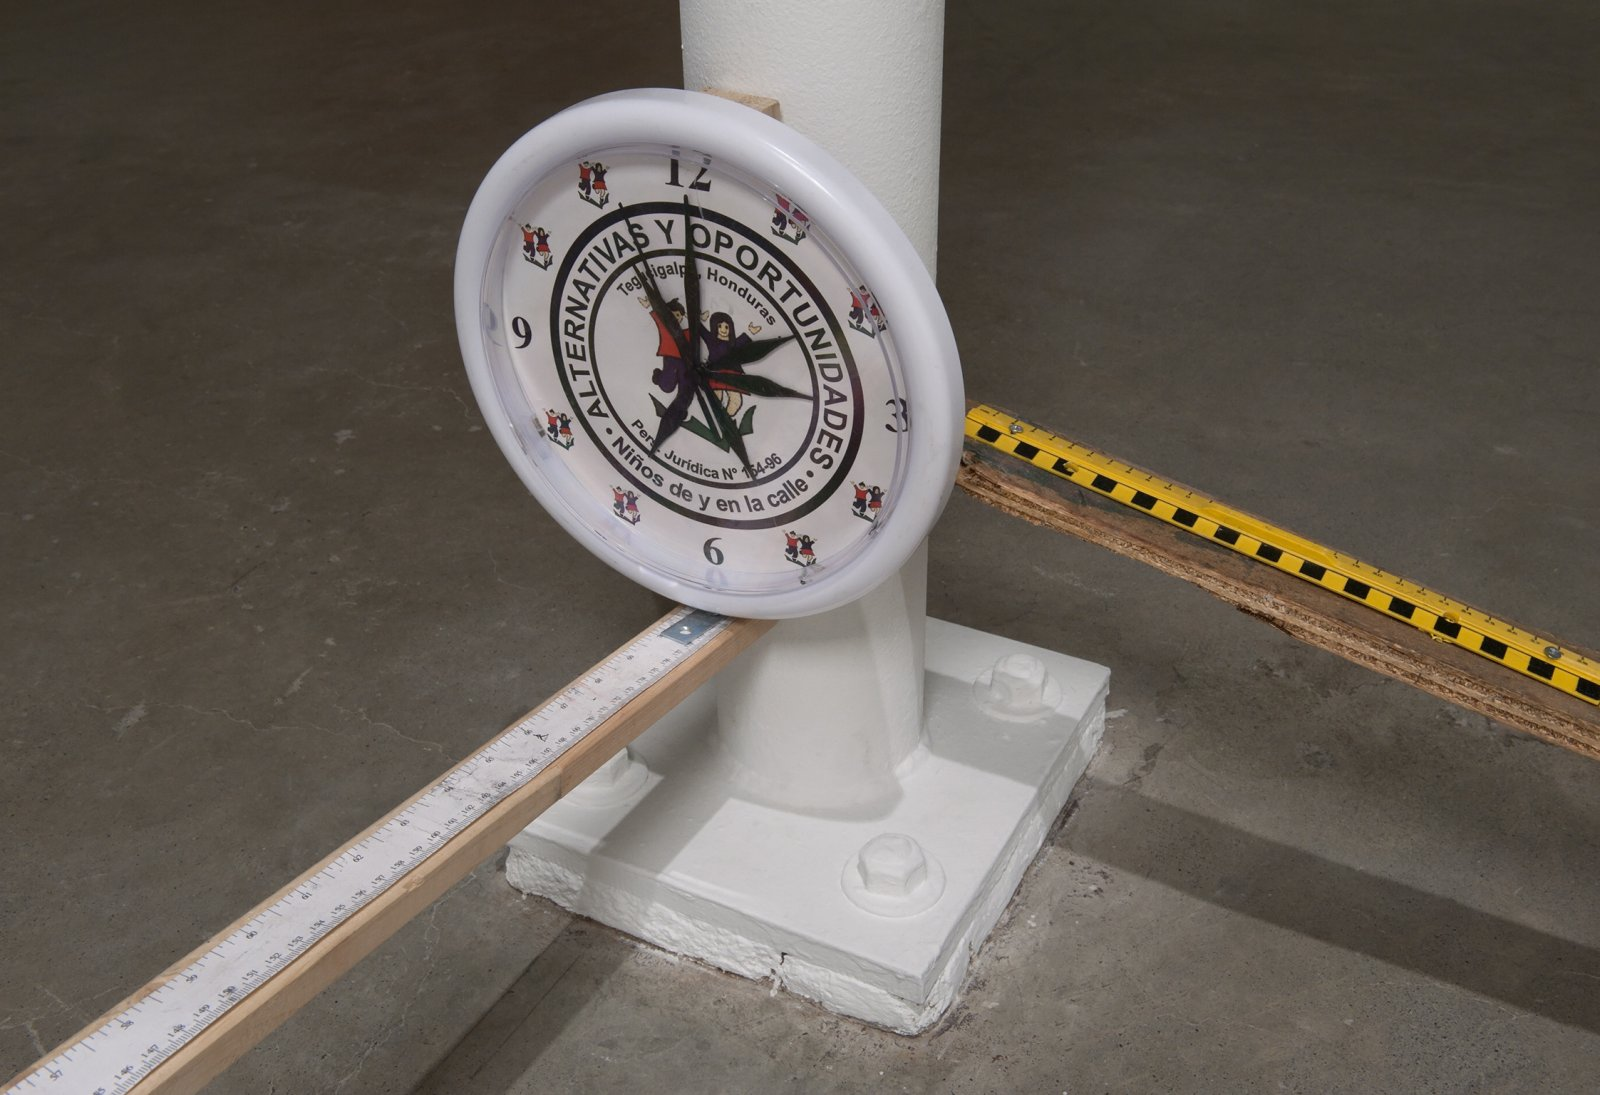 Julia Feyrer, Canada Arm & Honduras Clock (detail), 2012, Canadian Study of Diet Lifestyle and Health paper, tape measure, Alternativas y Oportunidades souvenir clock from Tegucigalpa, Honduras, wood, handle, camera mount by Julia Feyrer